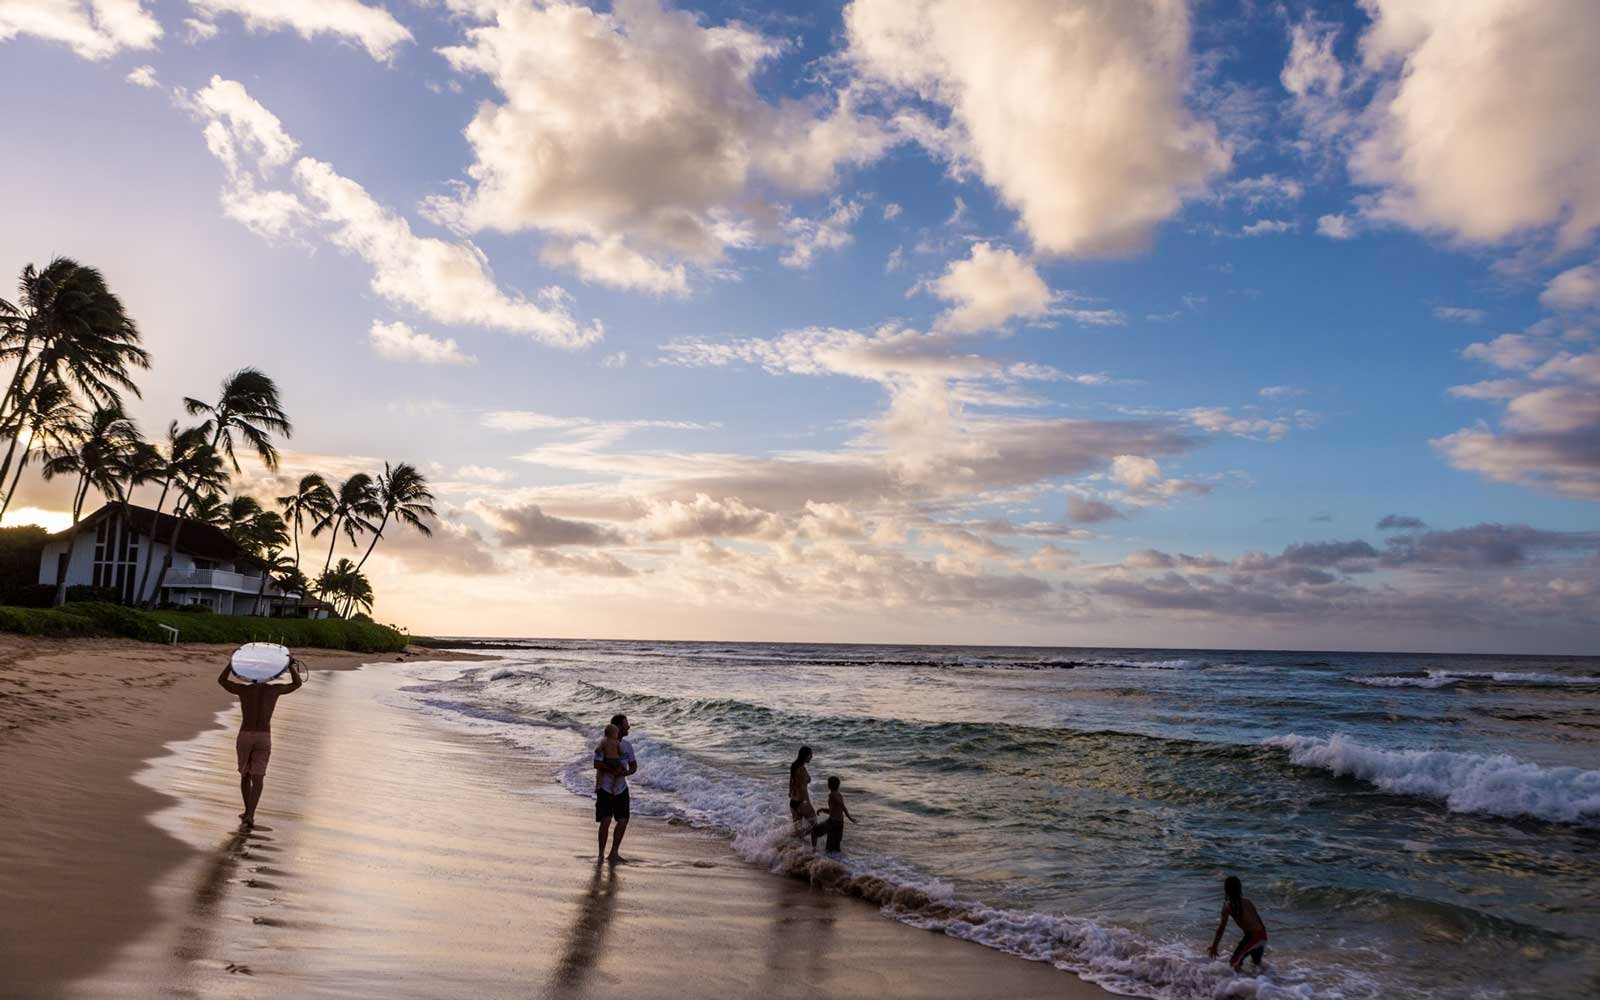 5 things not to do in Hawaii